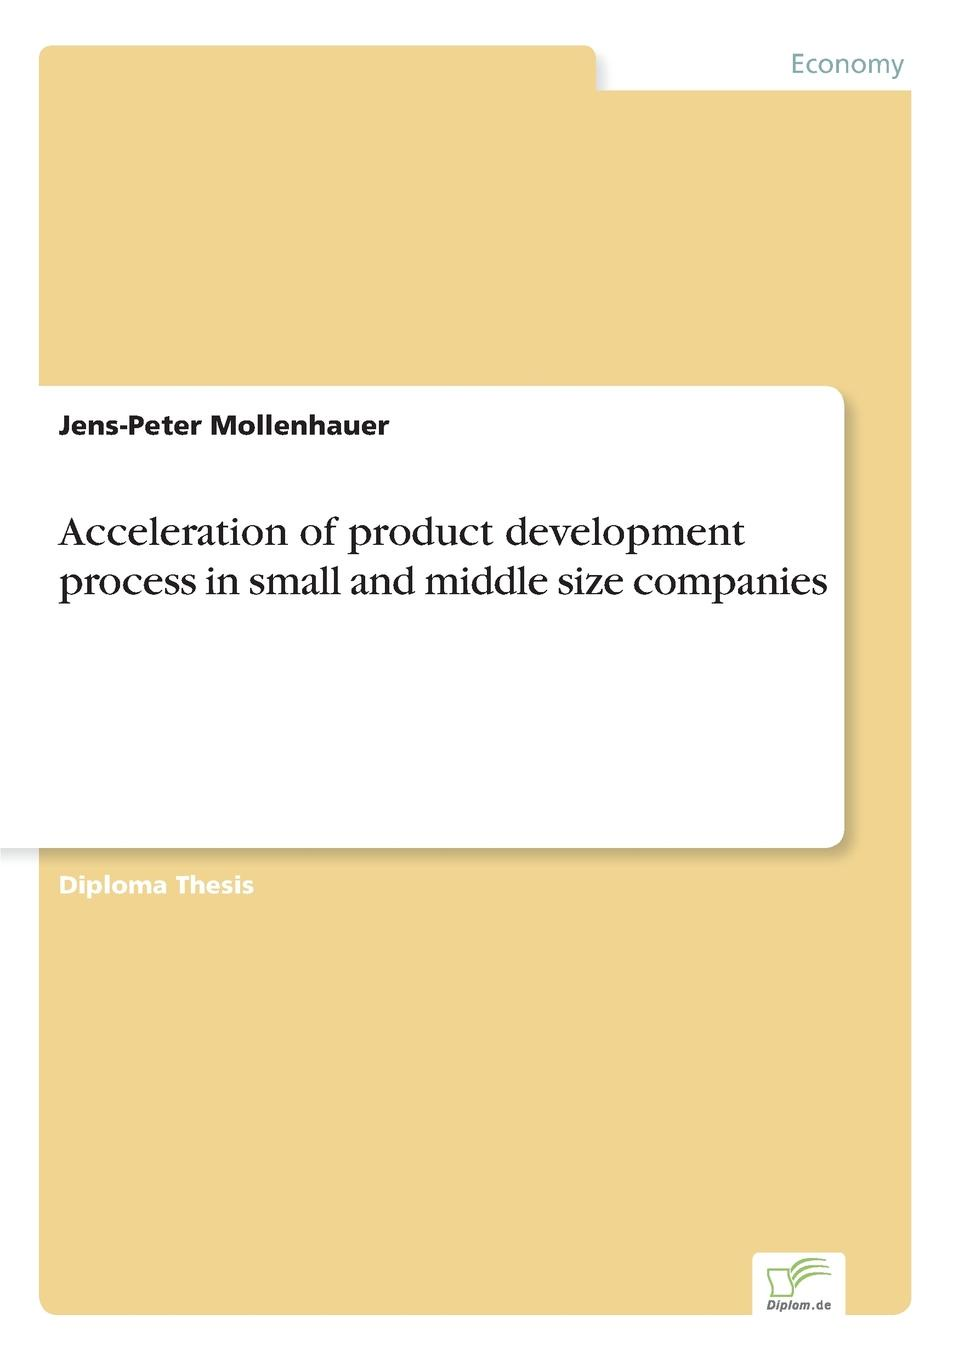 Jens-Peter Mollenhauer Acceleration of product development process in small and middle size companies halil kiymaz market microstructure in emerging and developed markets price discovery information flows and transaction costs